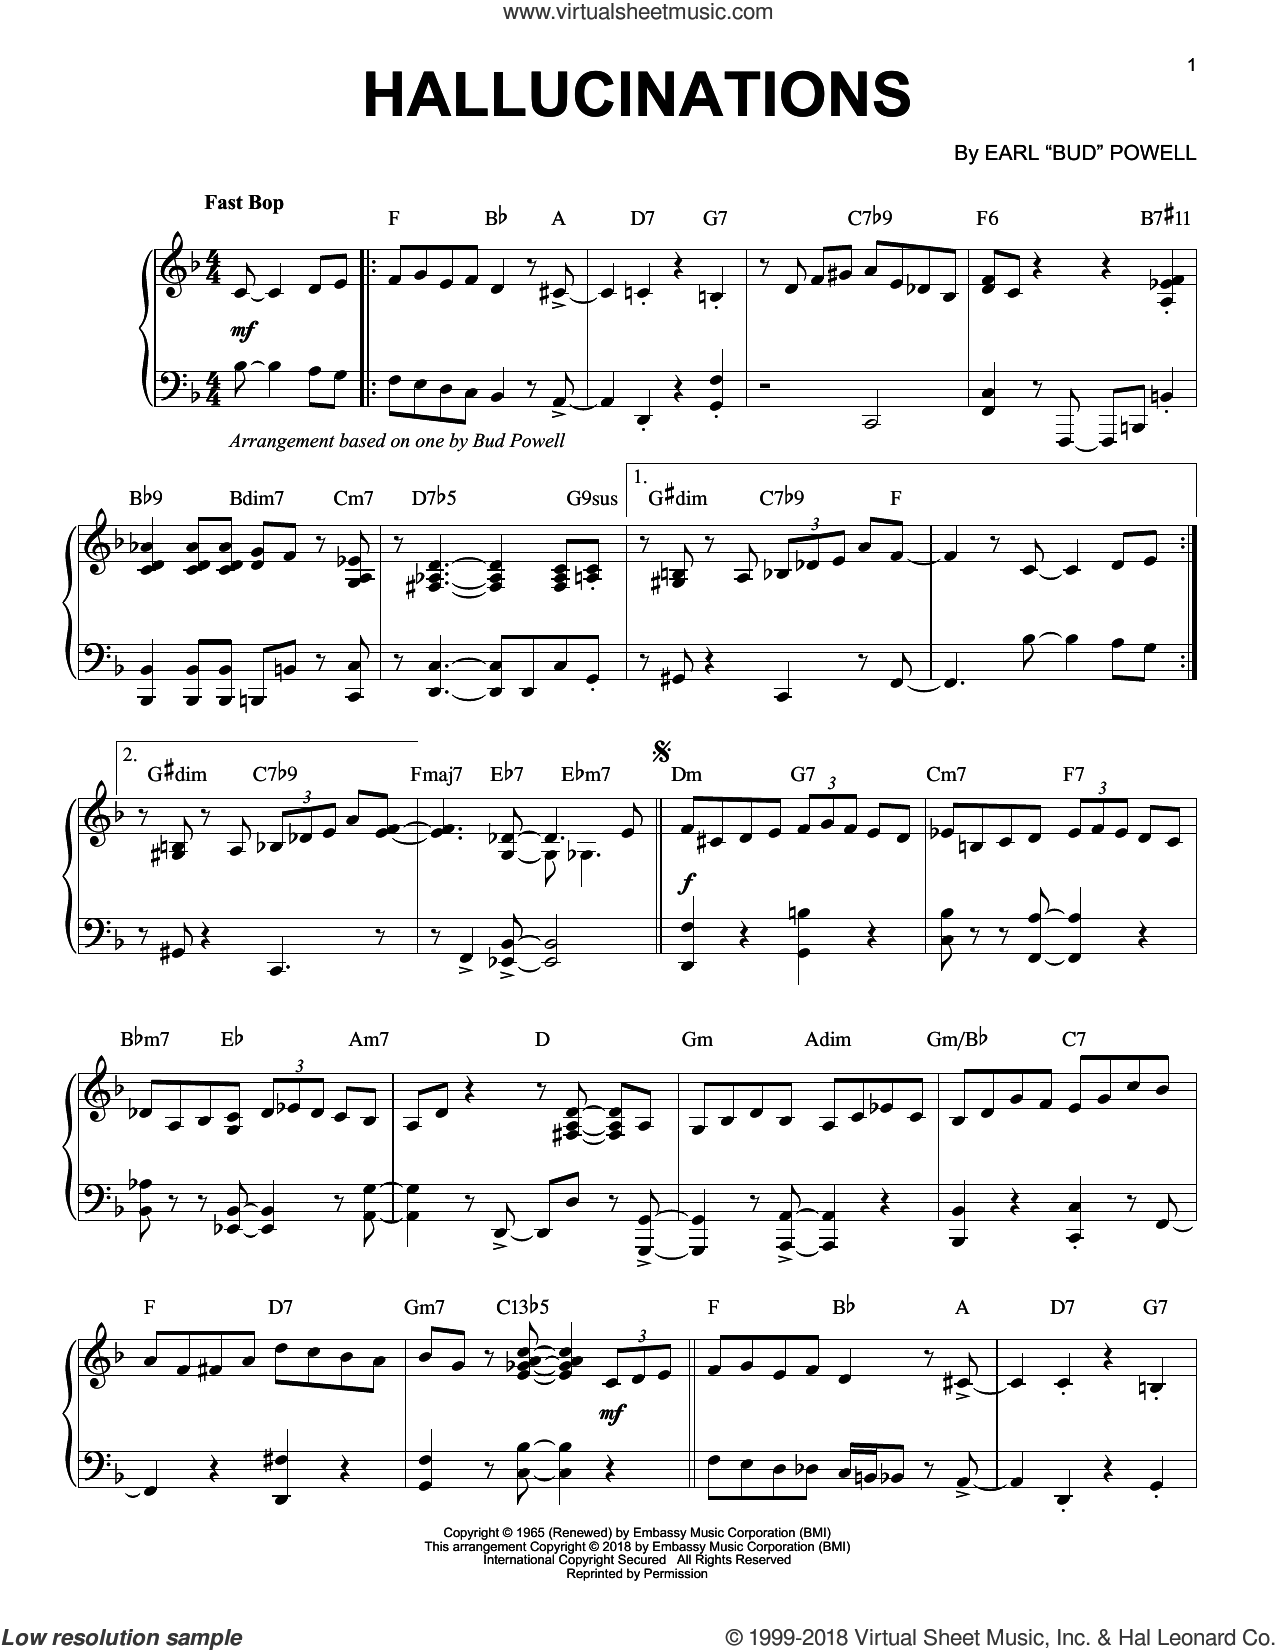 Hallucinations sheet music for piano solo by Bud Powell, intermediate skill level